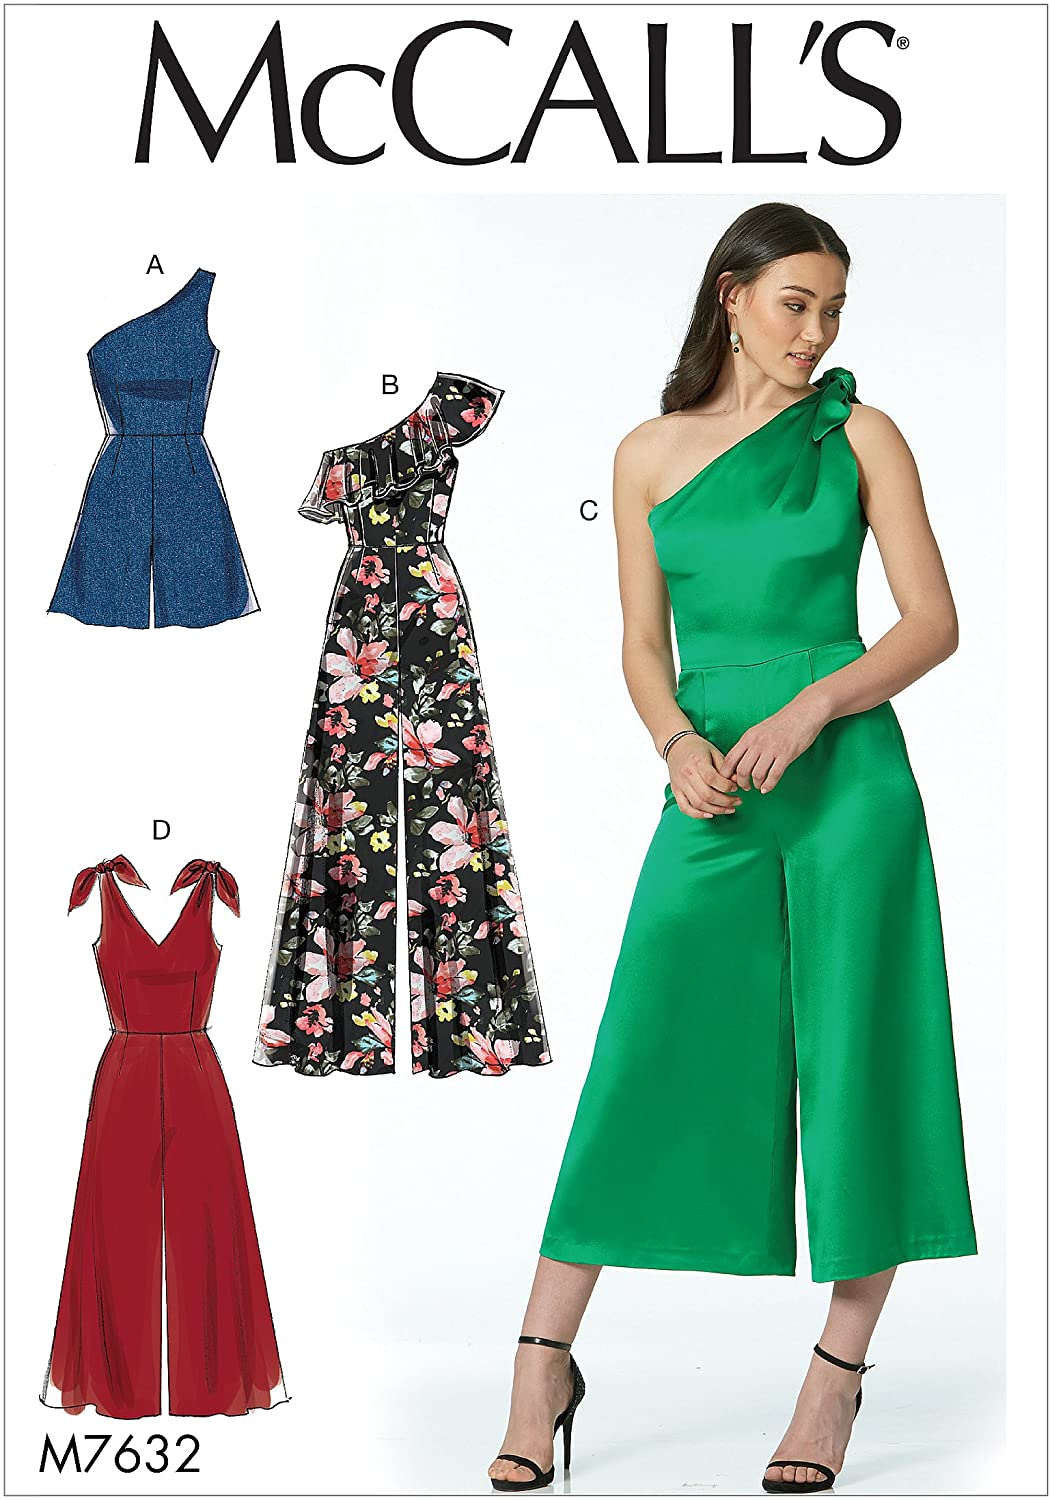 McCalls Patterns Romper And Jumpsuits With Shoulder Options